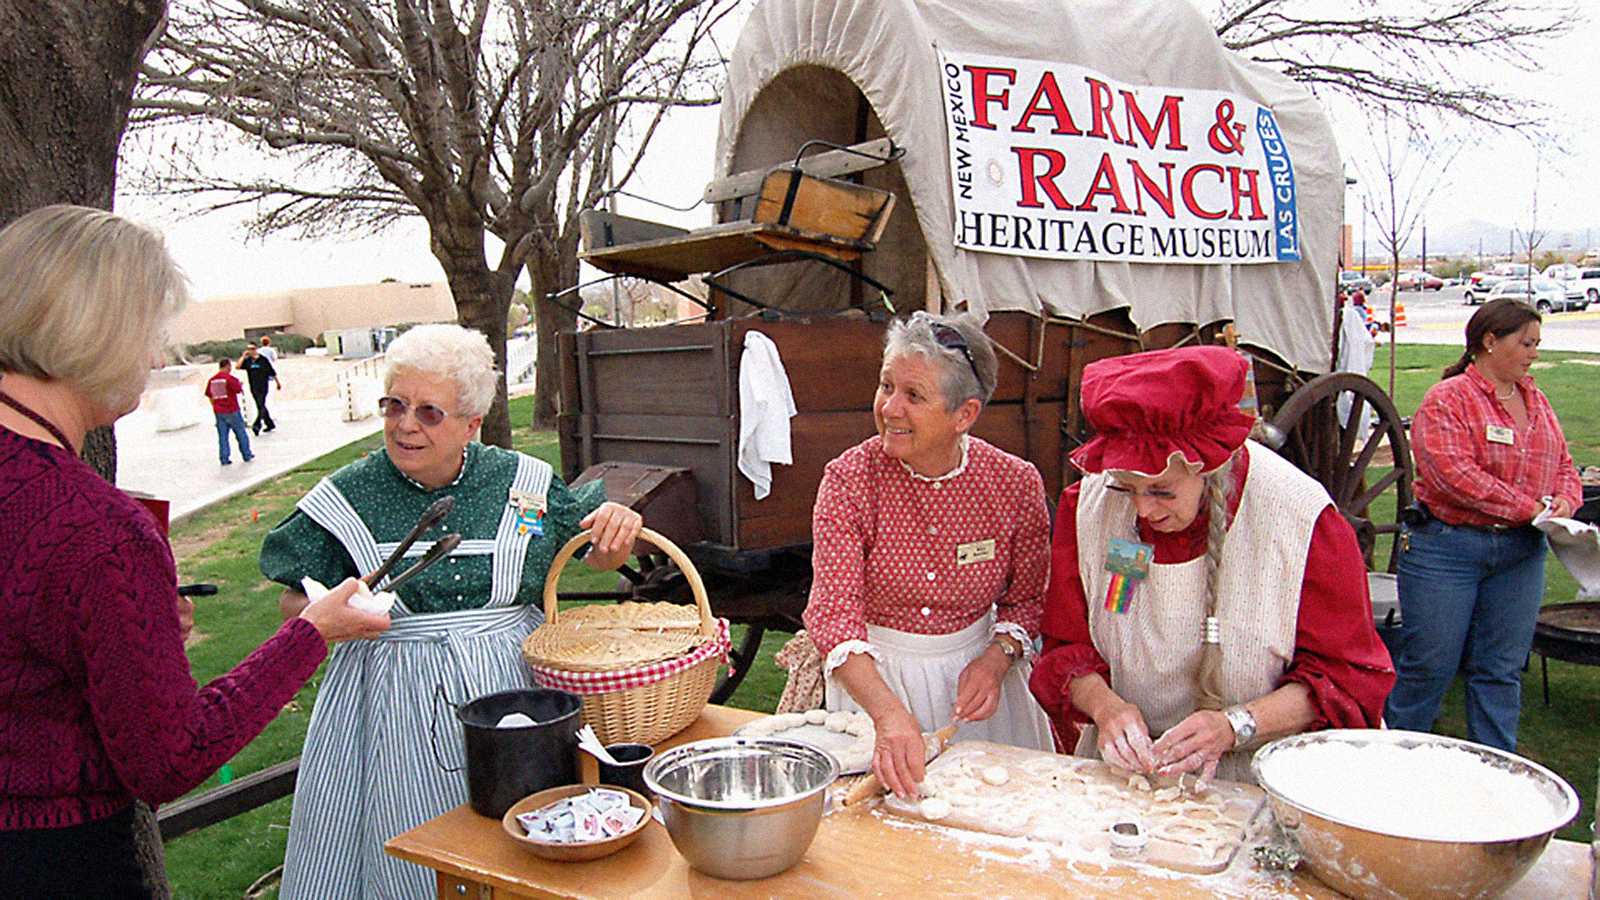 New Mexico Farm & Ranch Heritage Museum